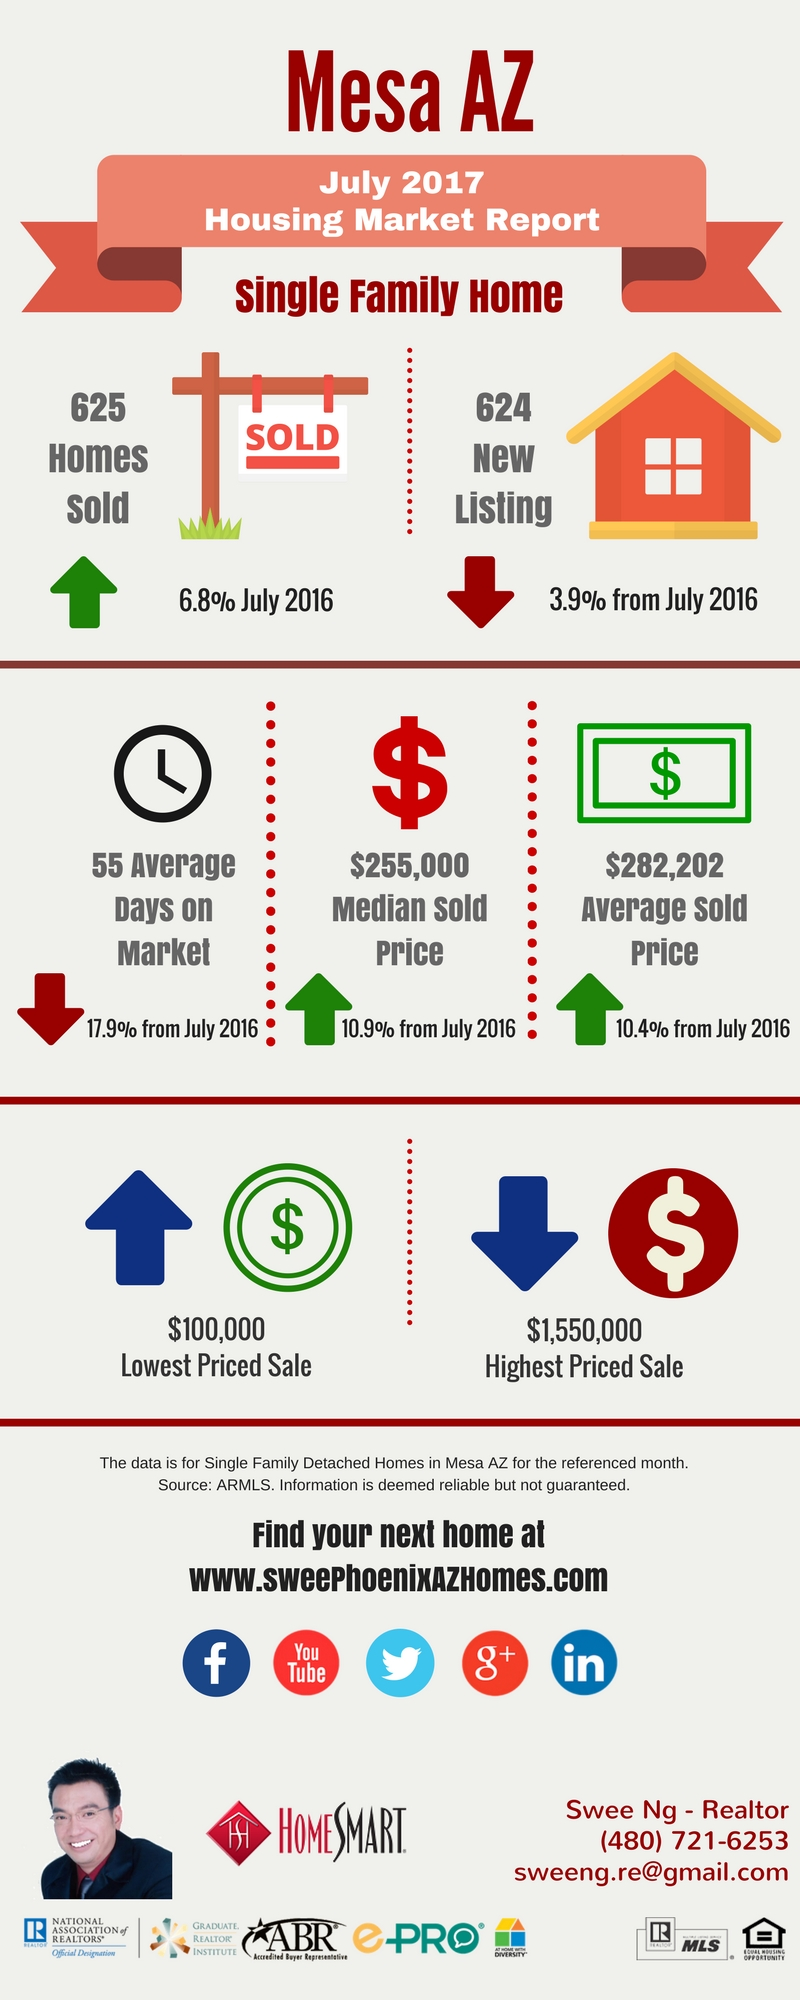 Mesa AZ Real Estate Housing Market Trend Report July 2017 by Swee Ng, Real Estate and House Value